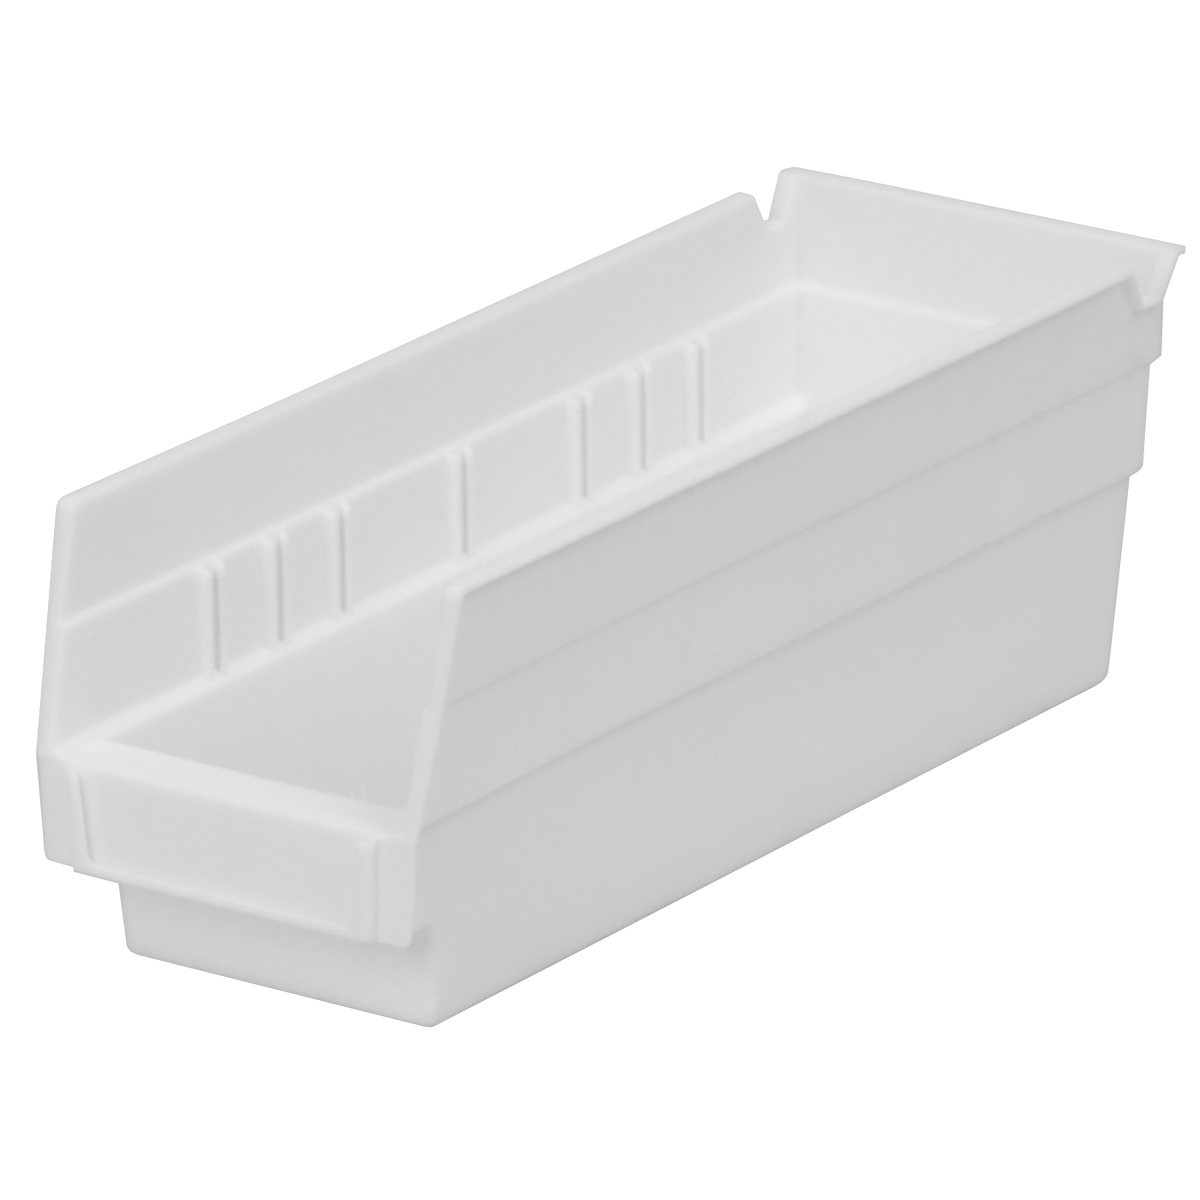 Shelf Bin 11-5/8 x 4-1/8 x 4, White (30120WHITE).  This item sold in carton quantities of 24.